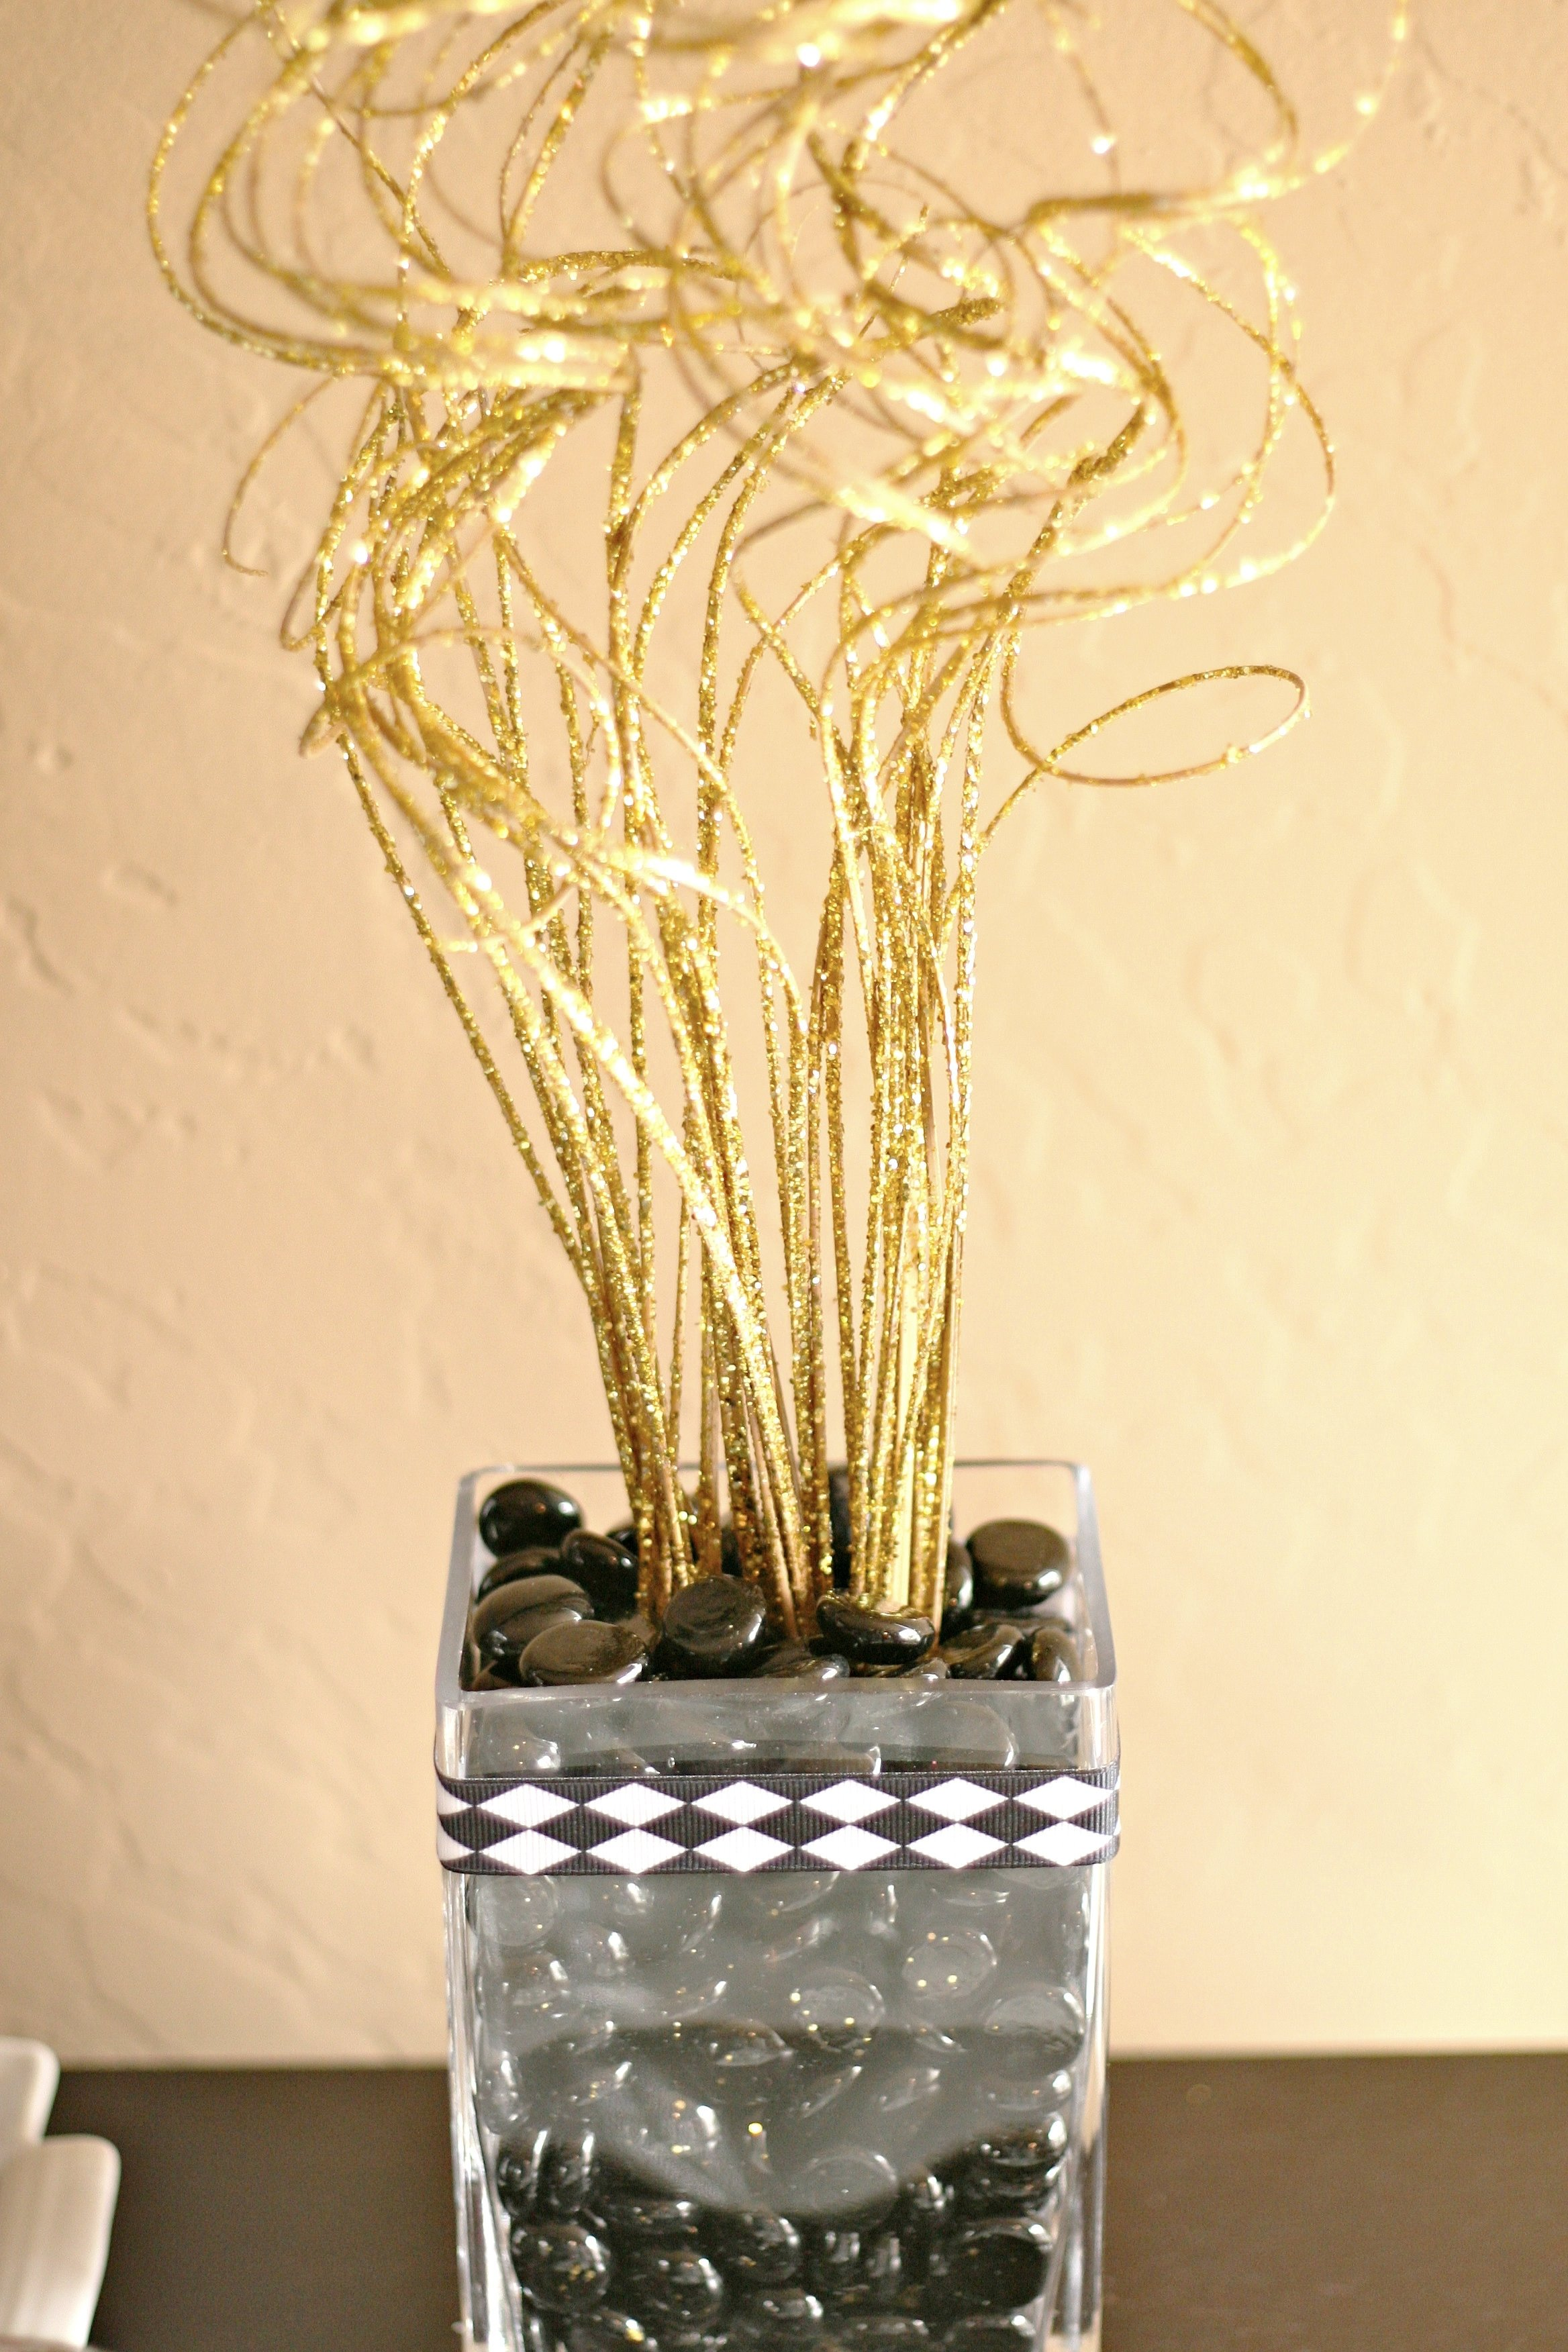 10 Most Recommended Black And Gold Centerpiece Ideas images about black gold theme on pinterest glitter and weddings idolza 2020